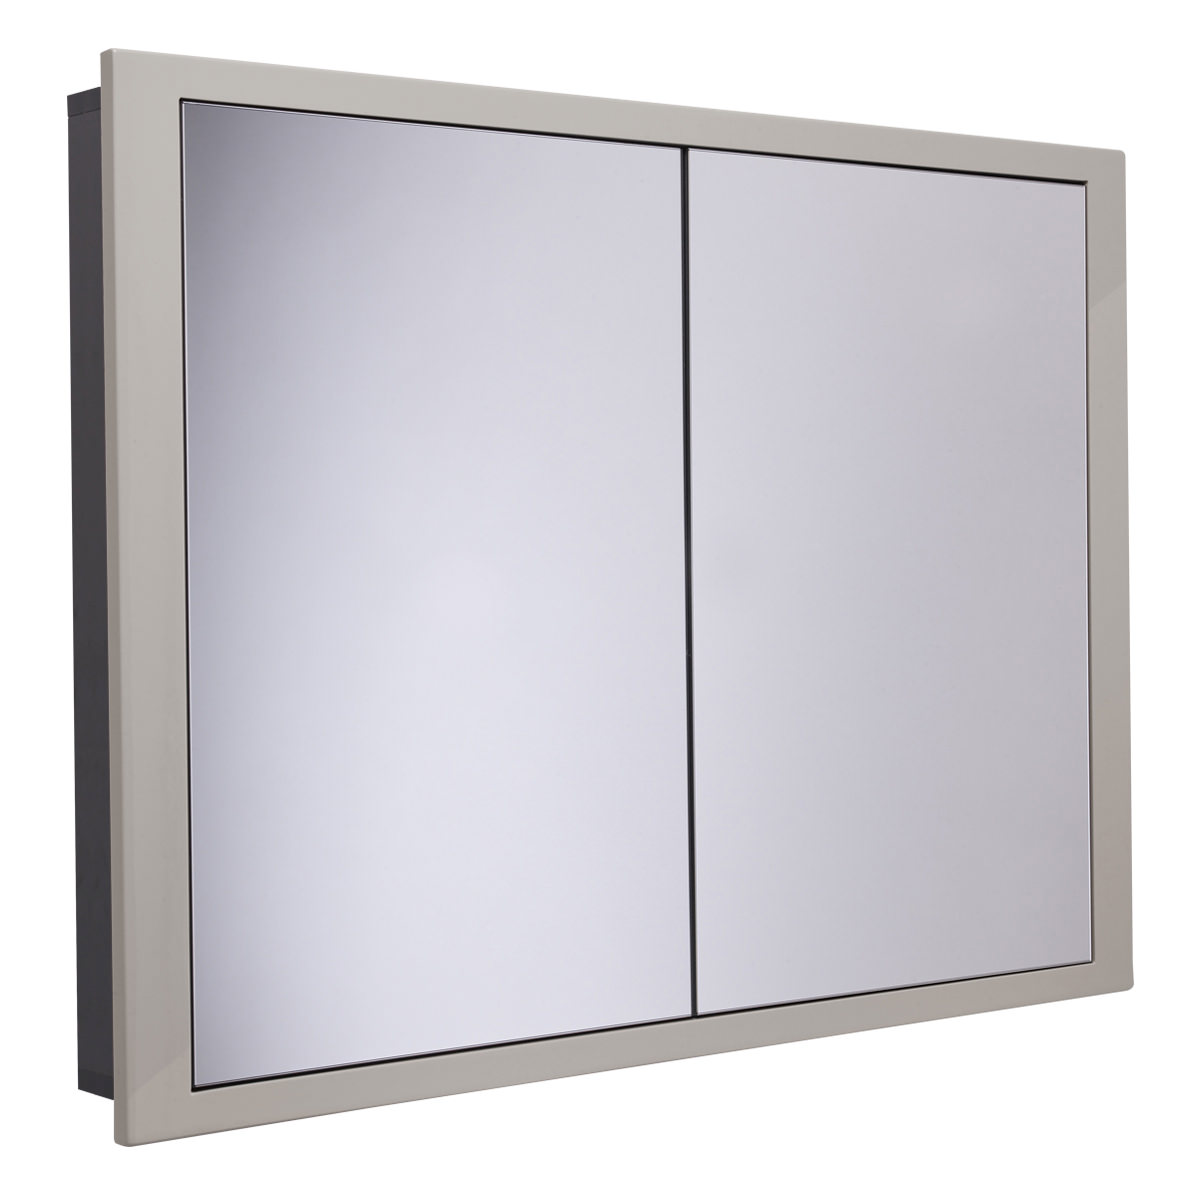 Recessed Shaving Cabinets Roper Rhodes Scheme 1000 X 120mm Recessed Cabinet Gloss